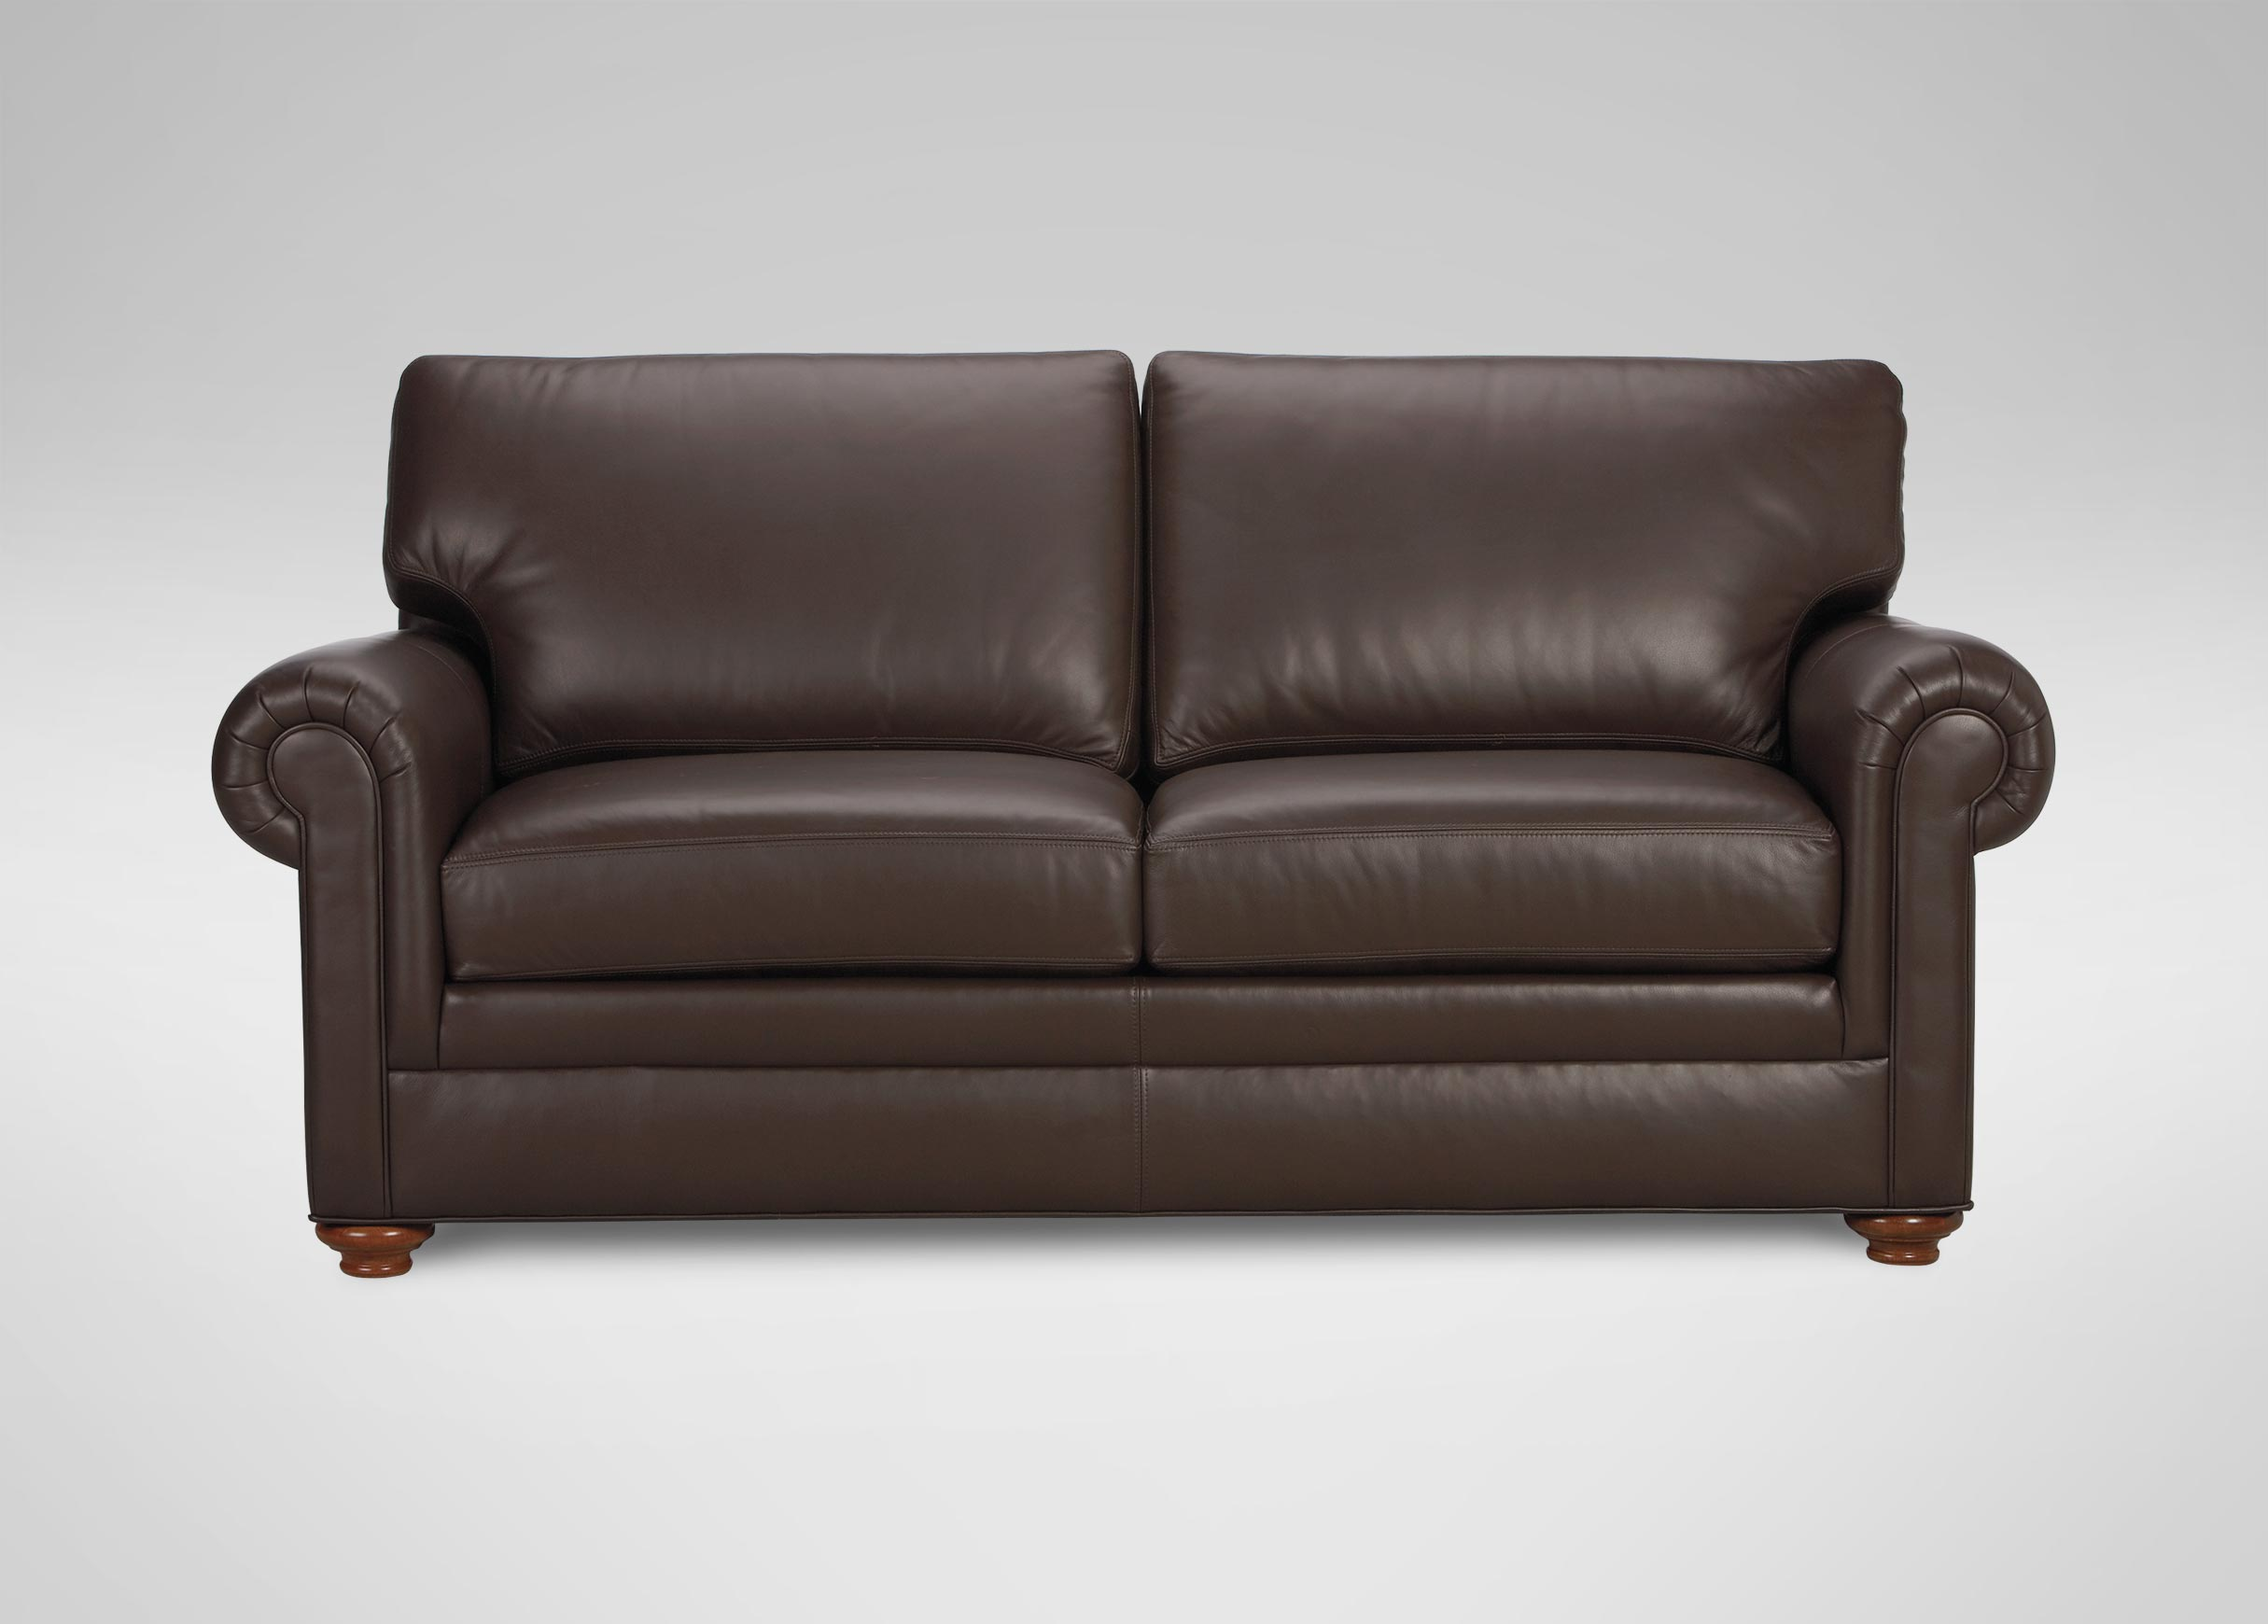 Conor Leather Sofa